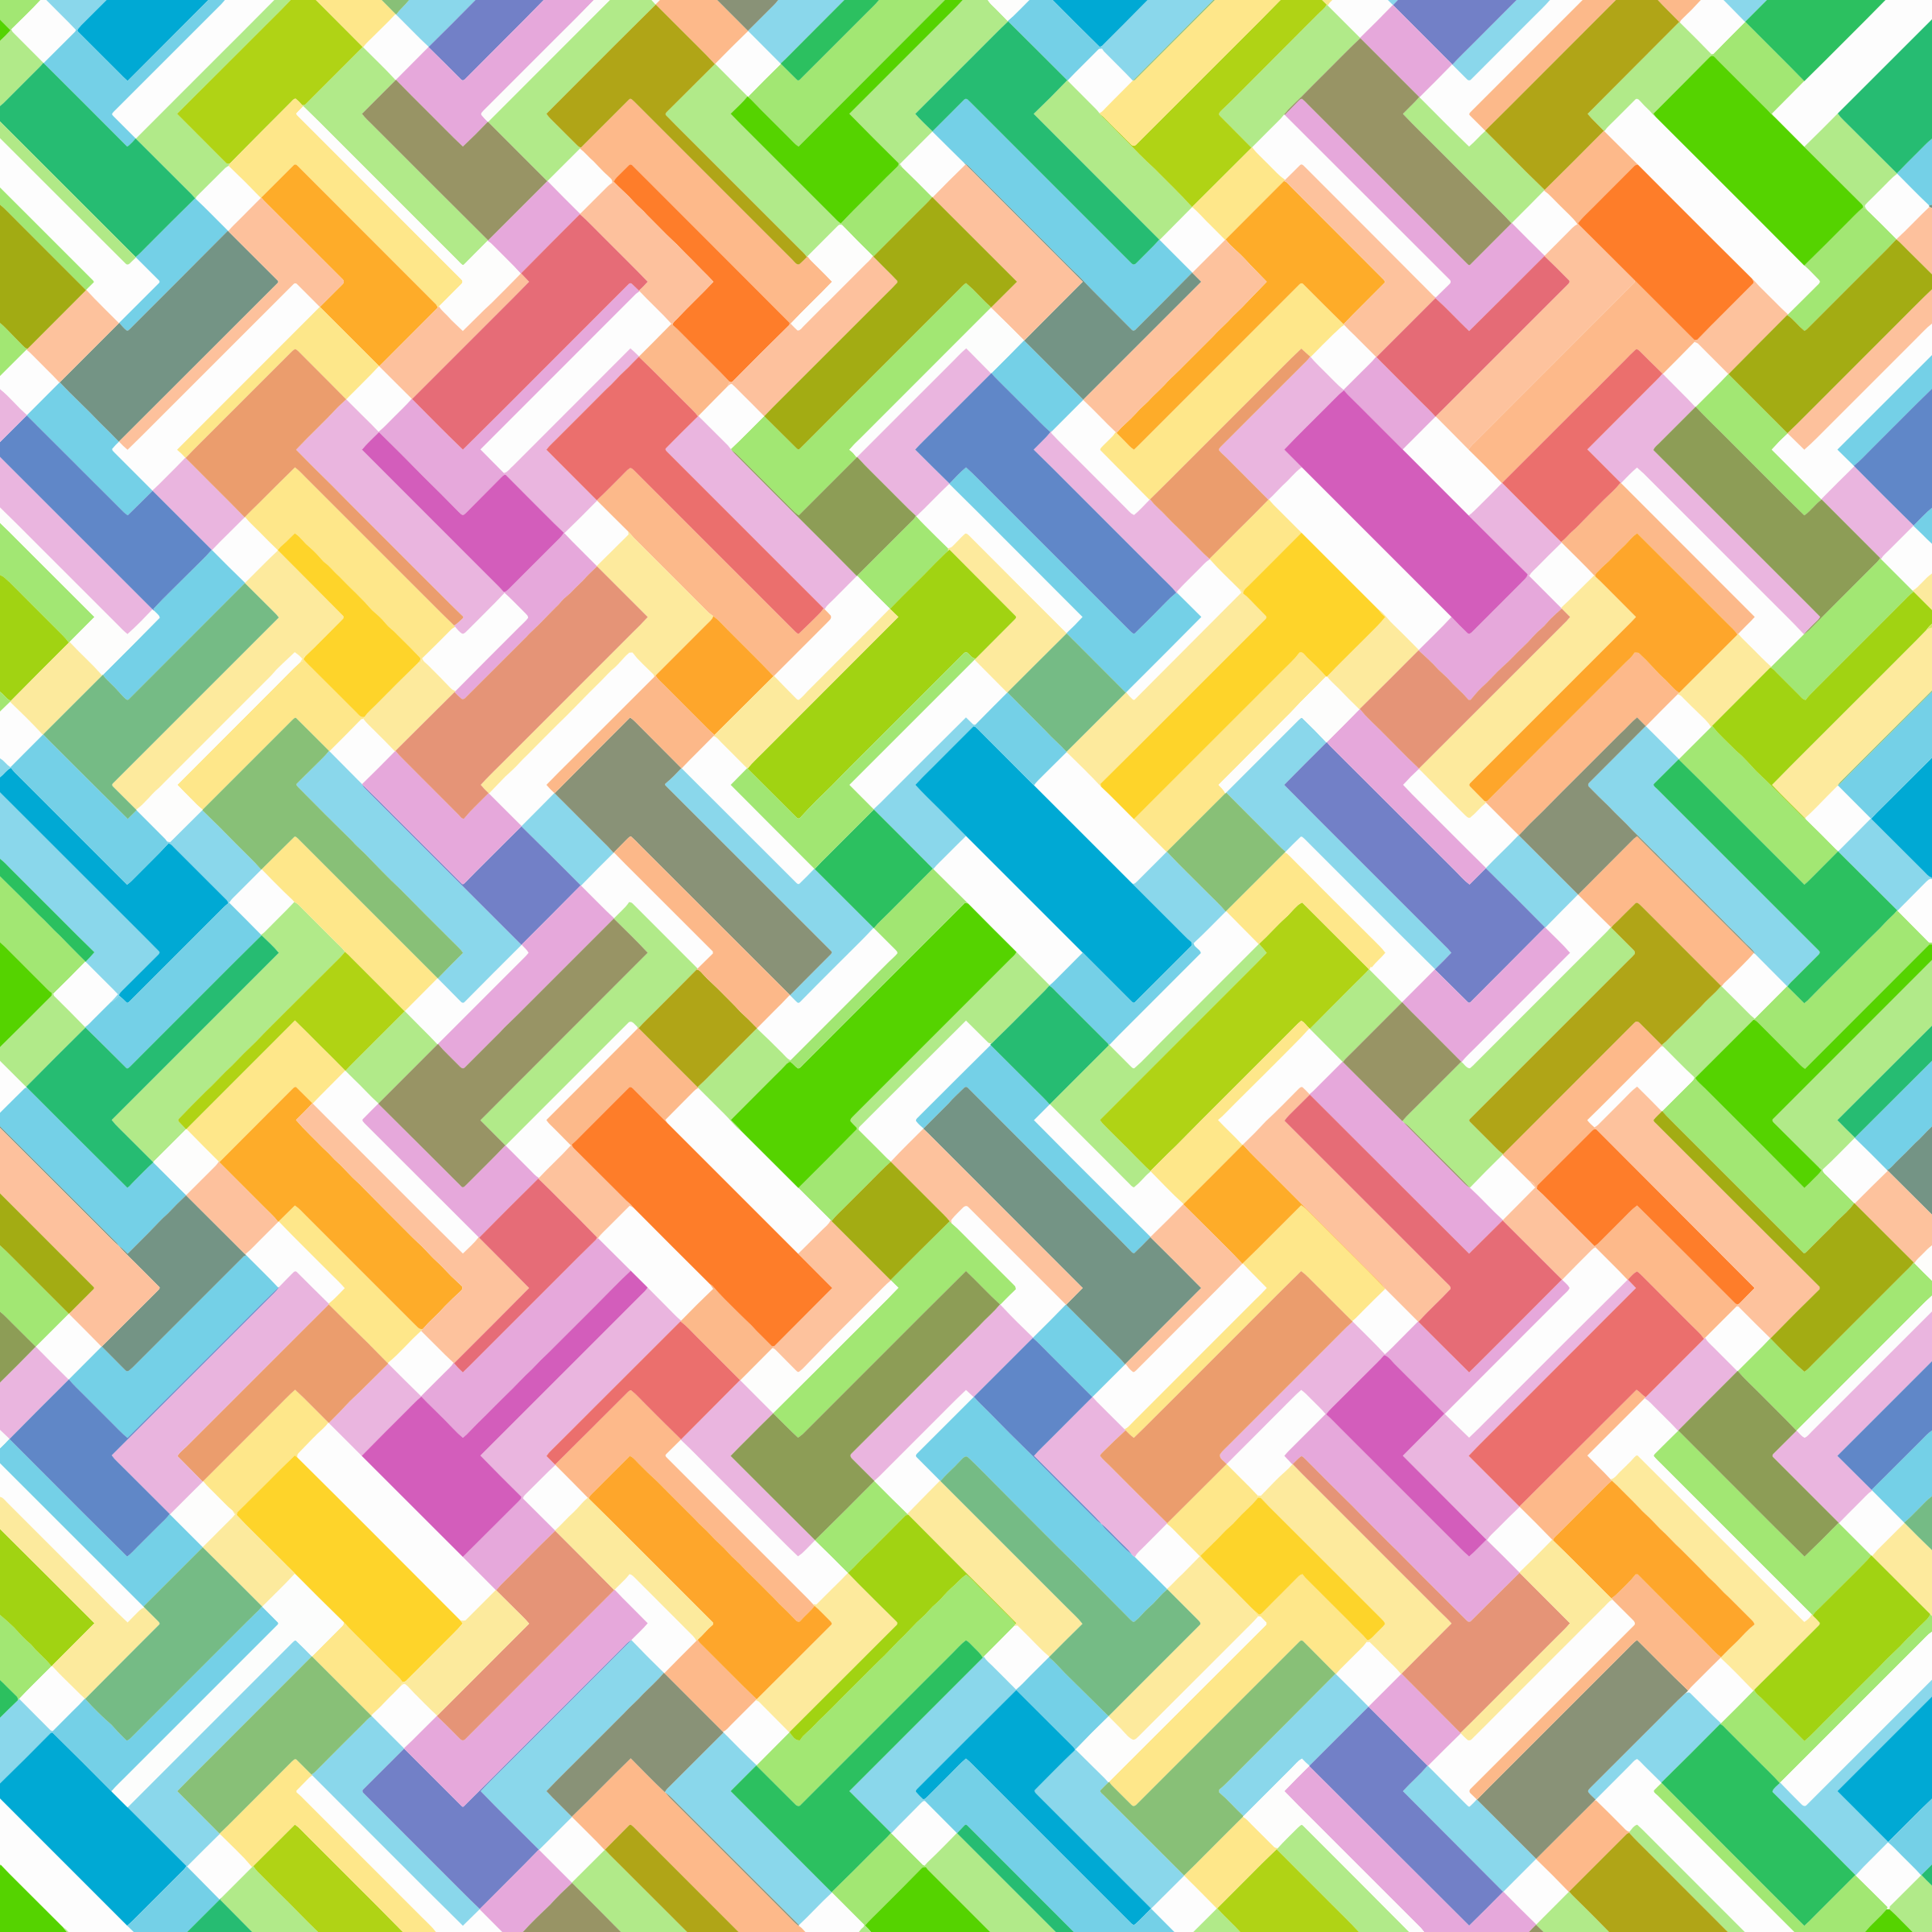 Free Colorful Geometric Wallpaper: Abstract Pattern Clipart